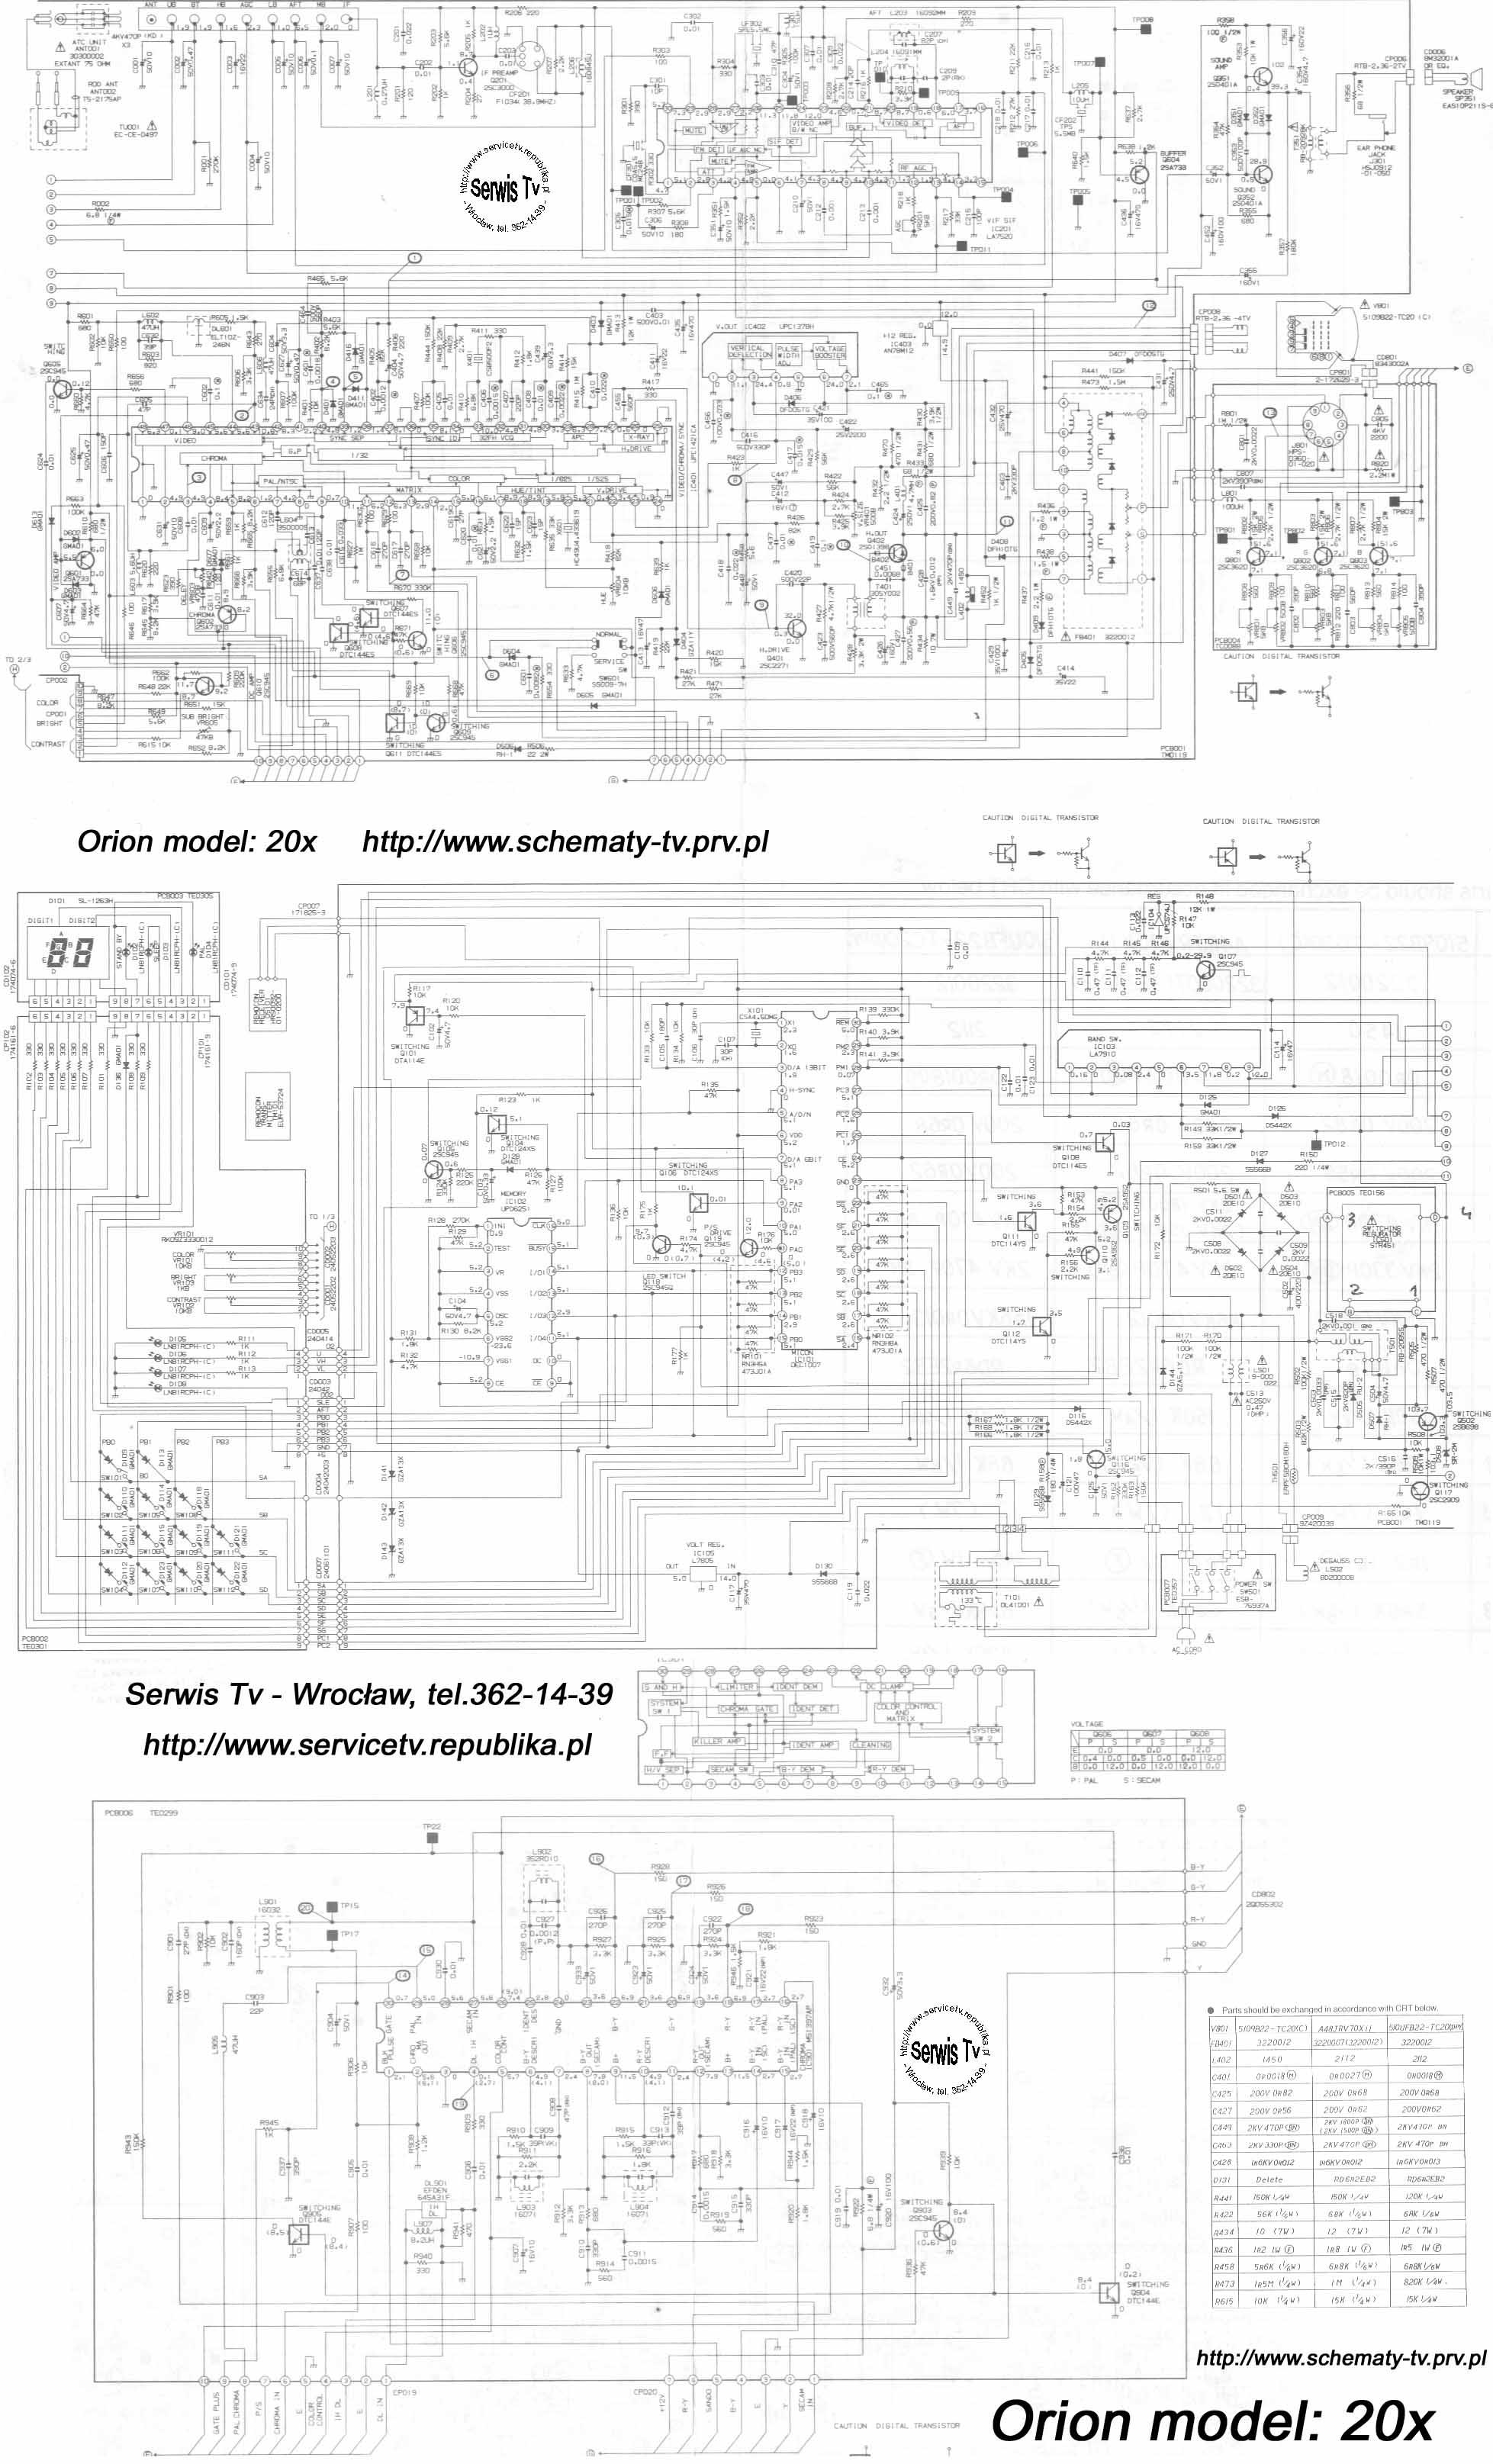 Thomson Tv Schematic Diagram - DIY Enthusiasts Wiring Diagrams •